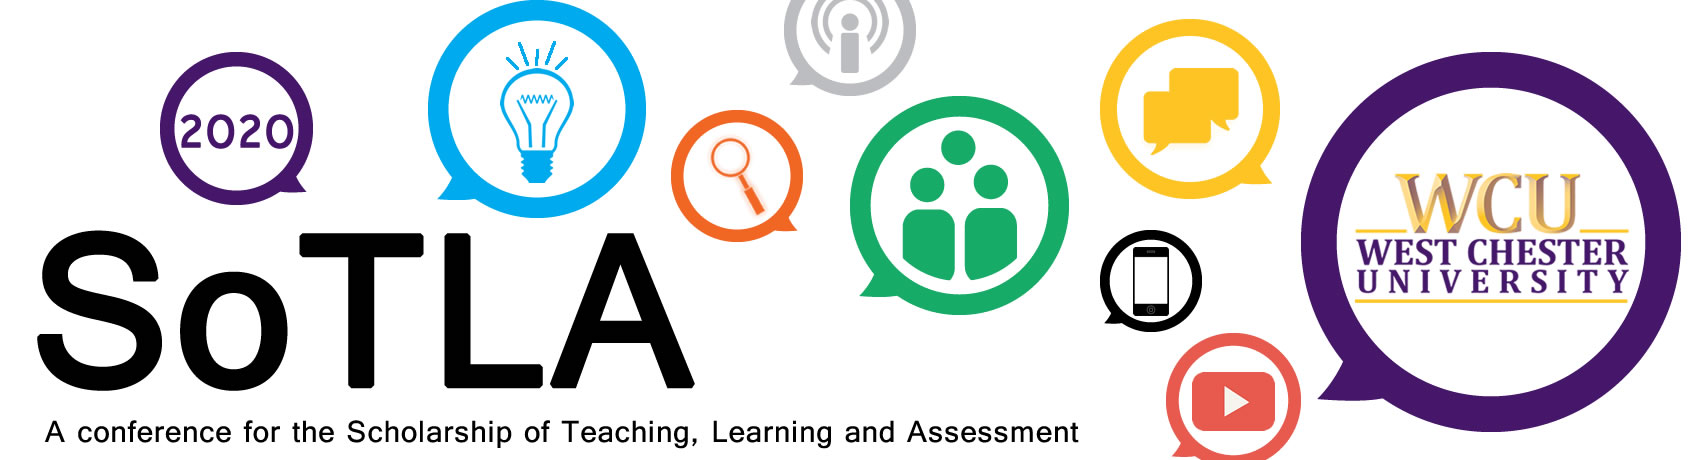 SoTLA, a conference for the scholarship of teaching, learning, and assessment